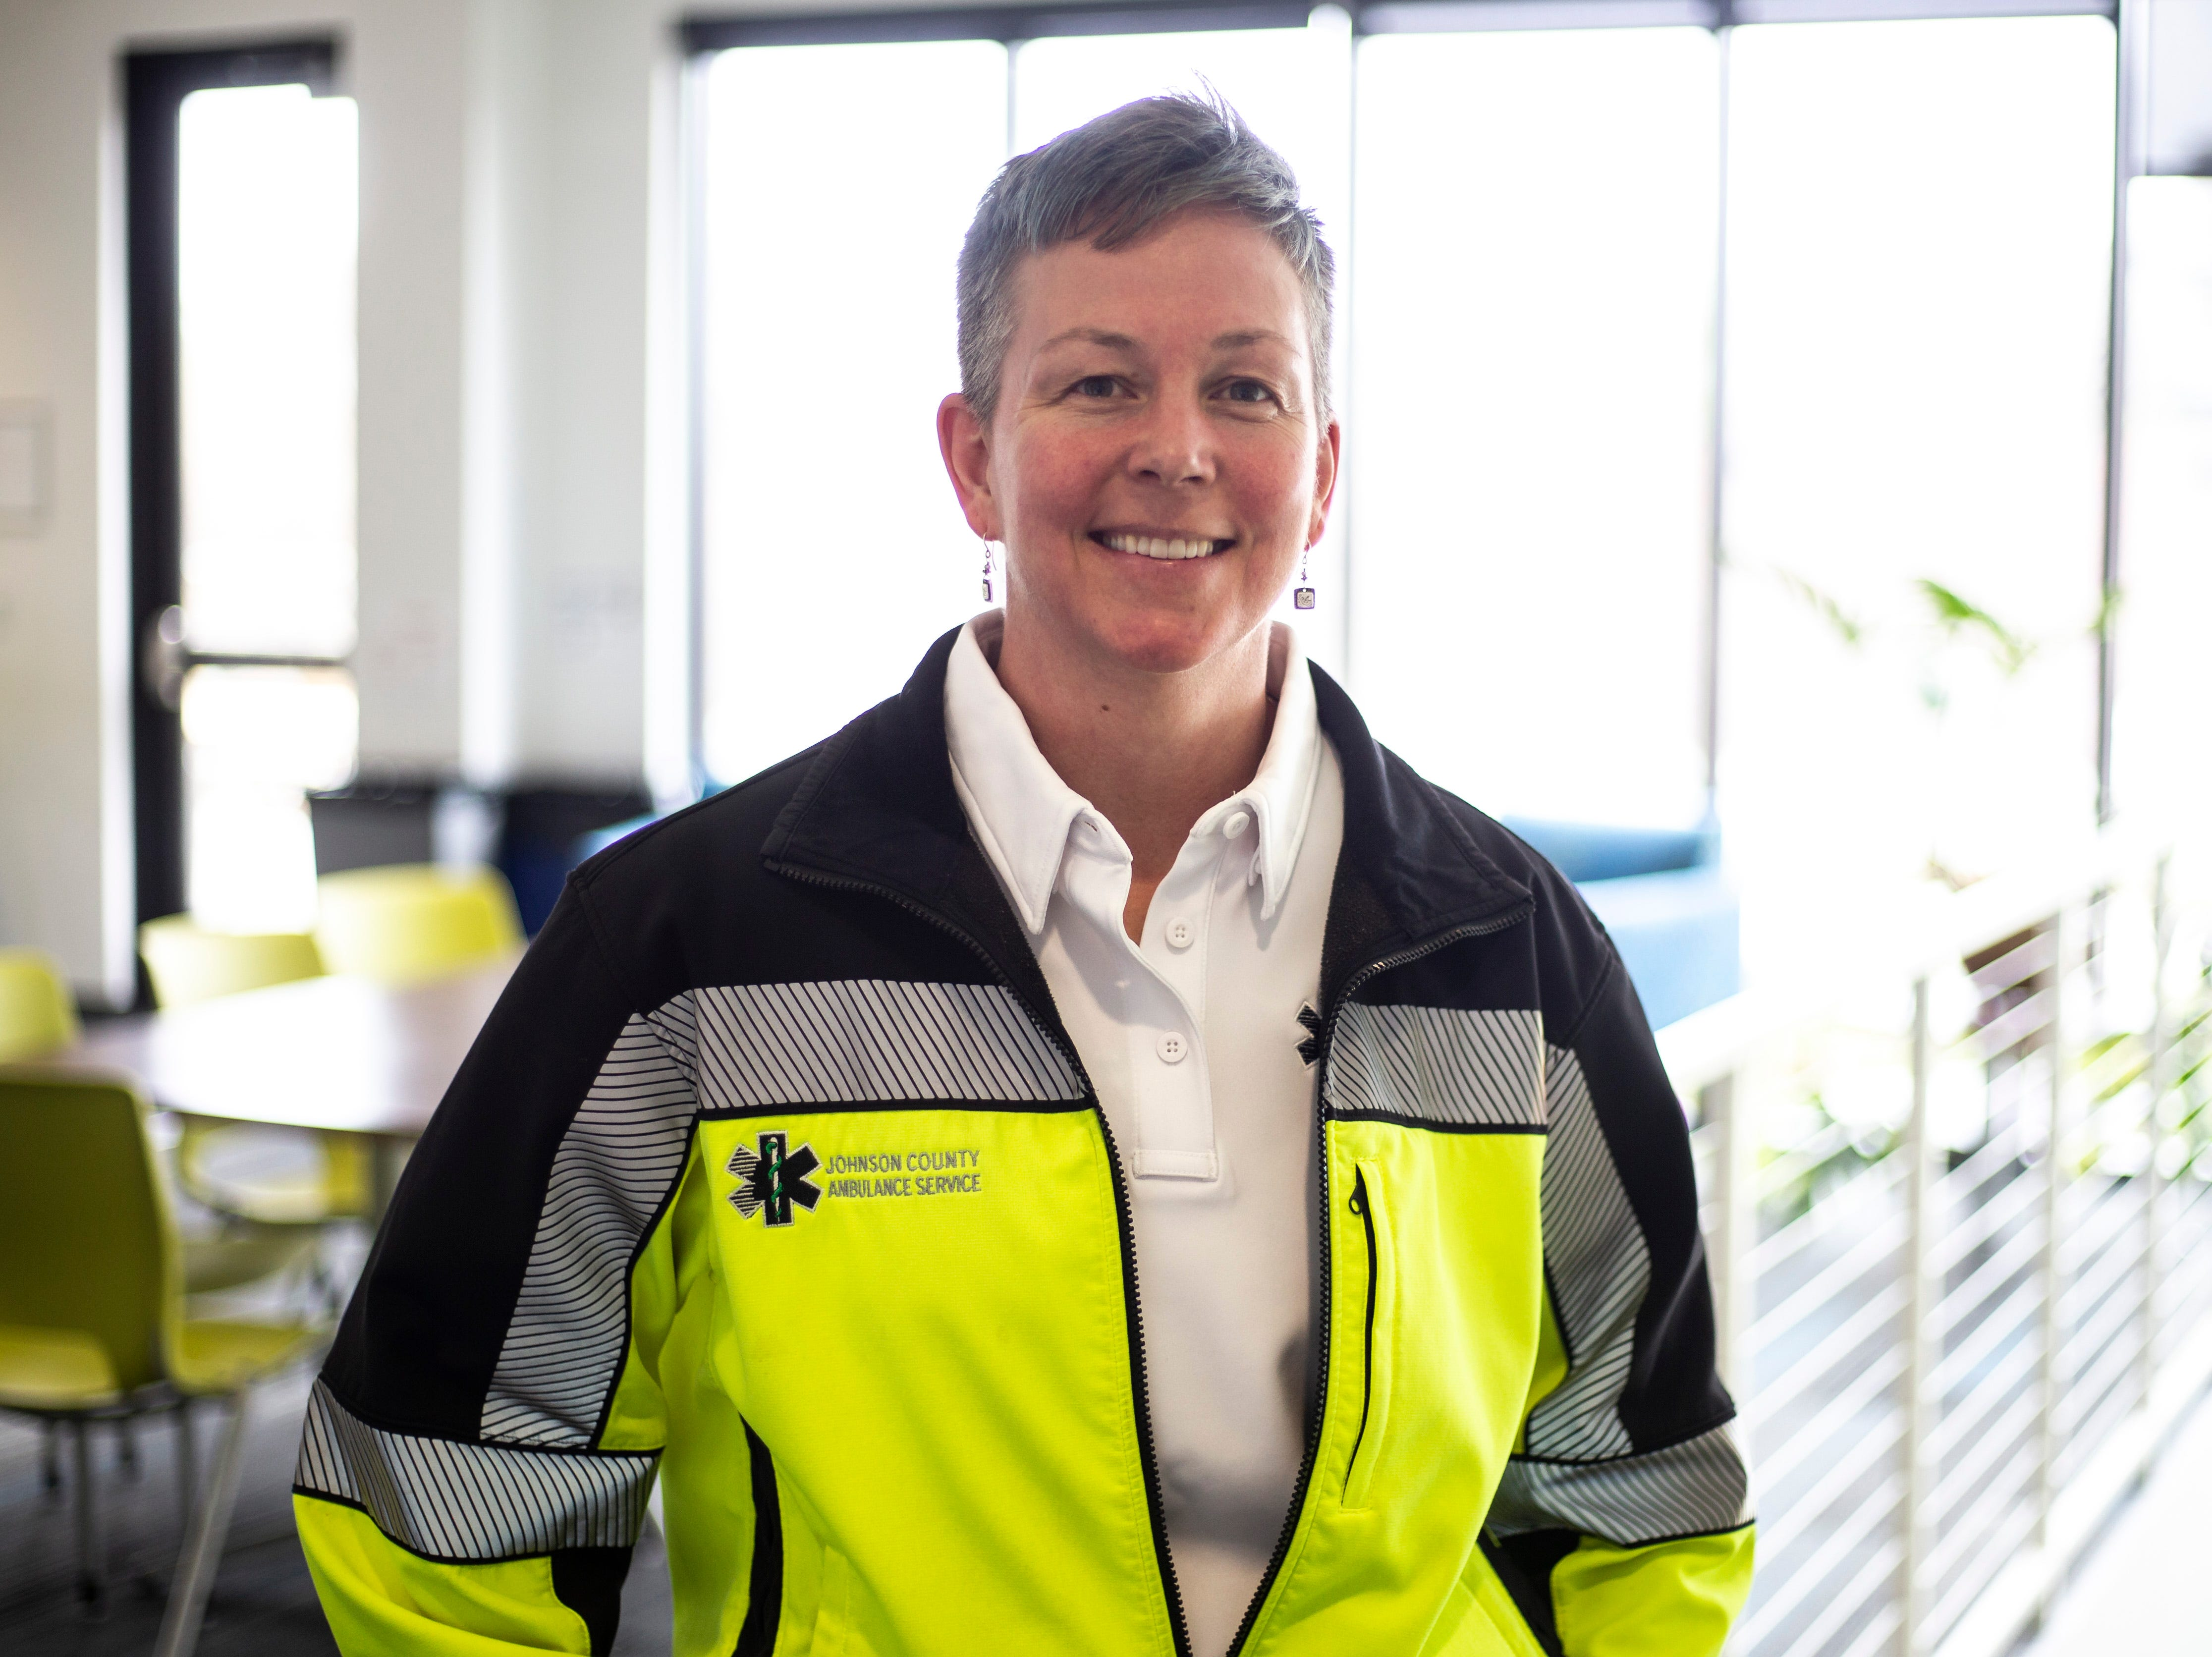 Fiona Johnson, director of Ambulance Service, poses for a photo on Wednesday, April 17, 2019, at the Johnson County Ambulance Services building at 808 S. Dubuque Street in Iowa City, Iowa.